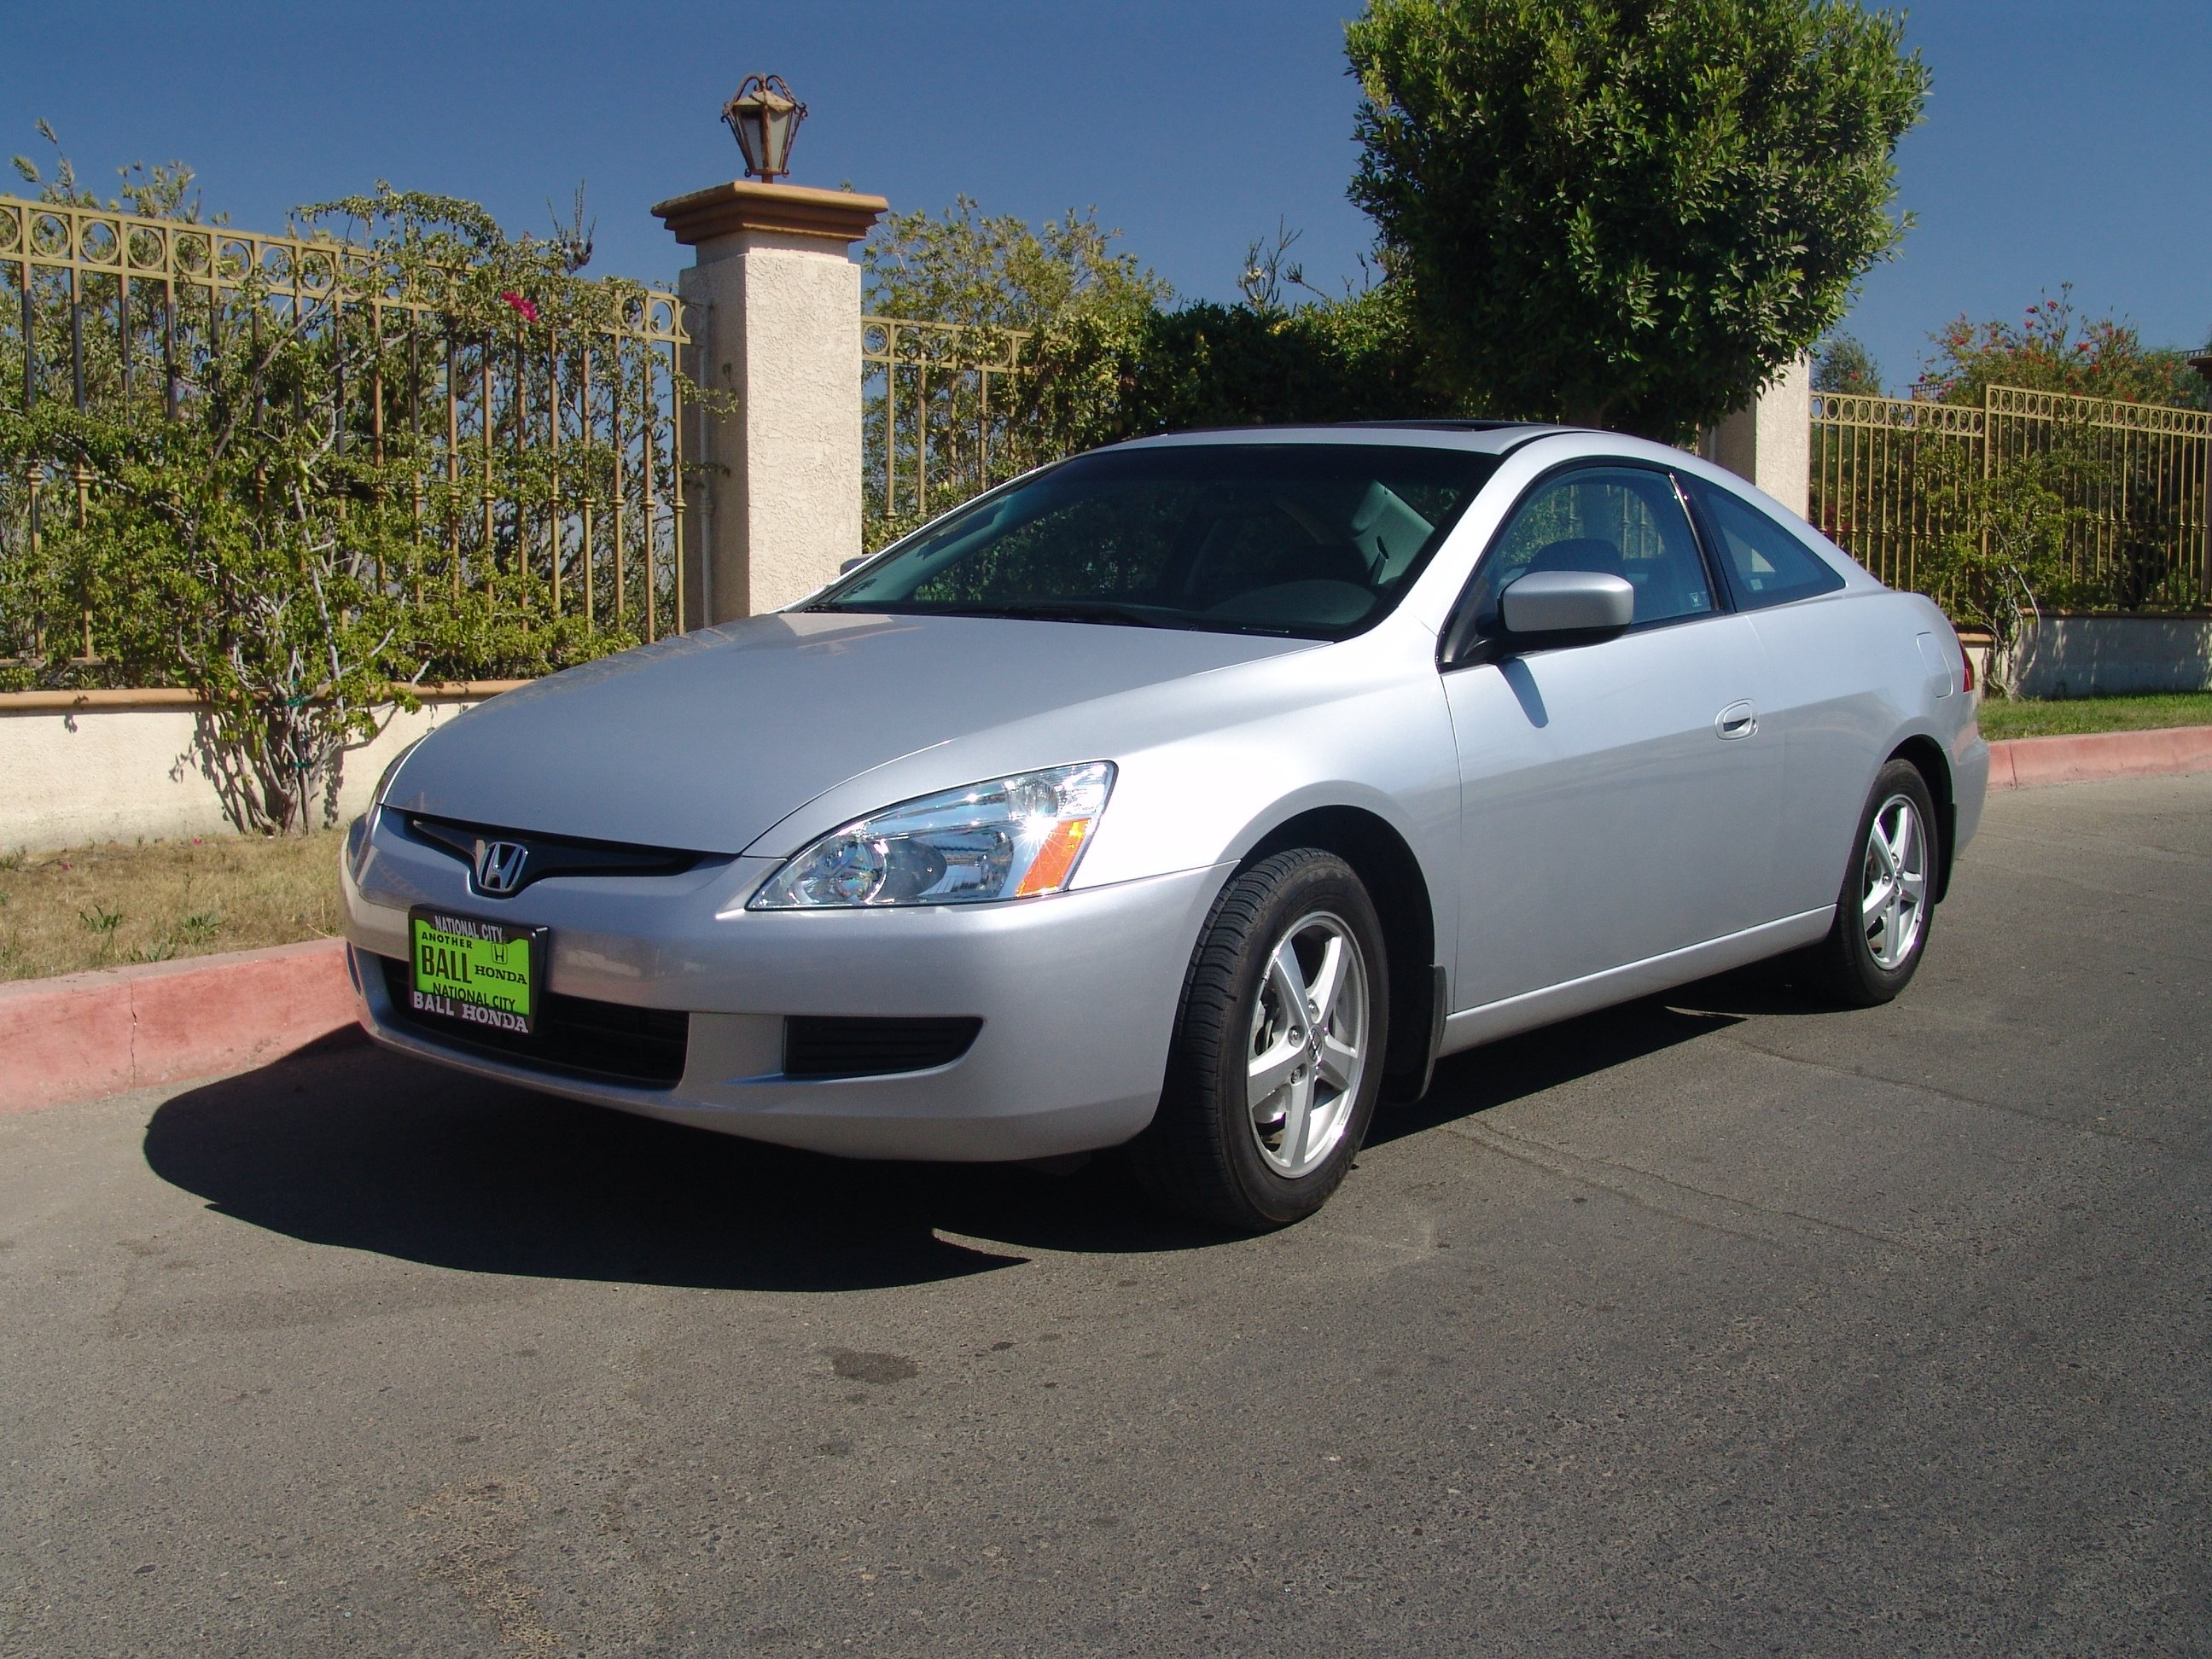 Honda Accord Vii Coupe 2003 Pictures #2